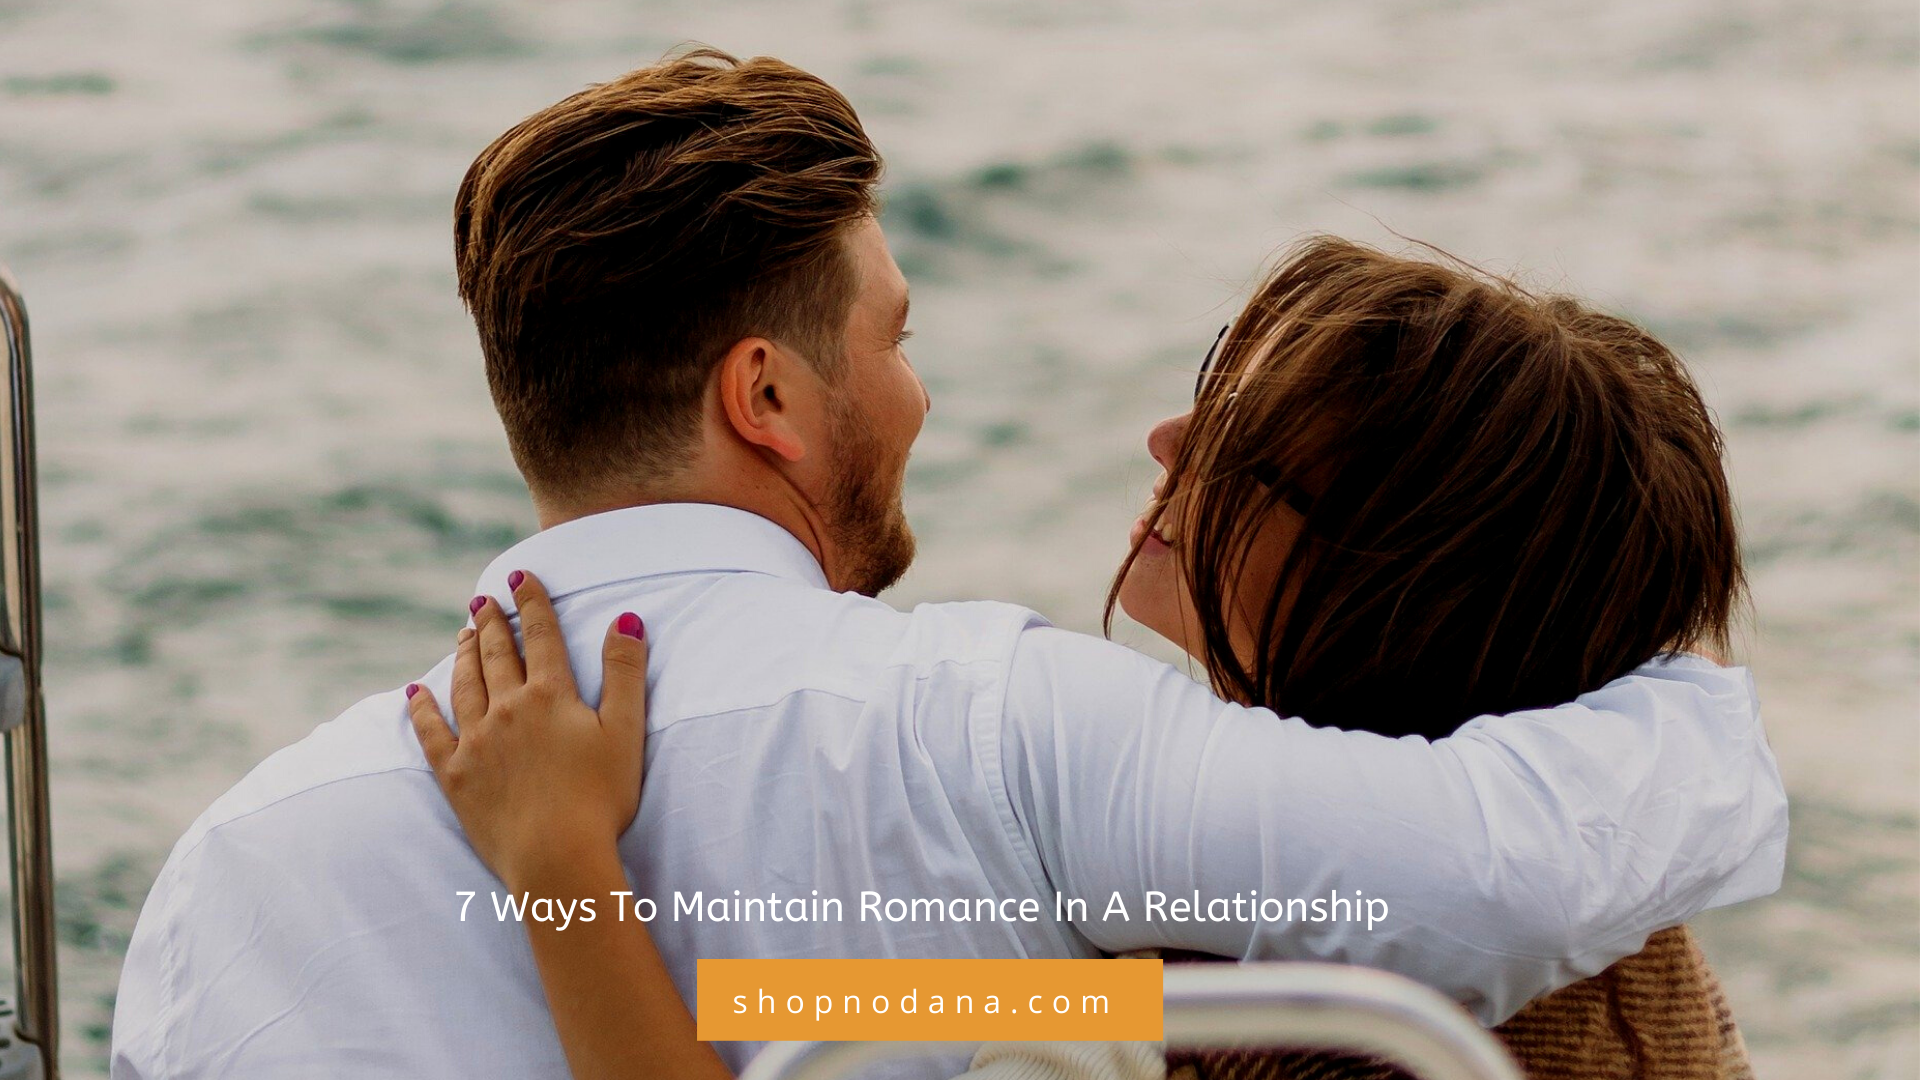 7 Ways To Maintain Romance In A Relationship